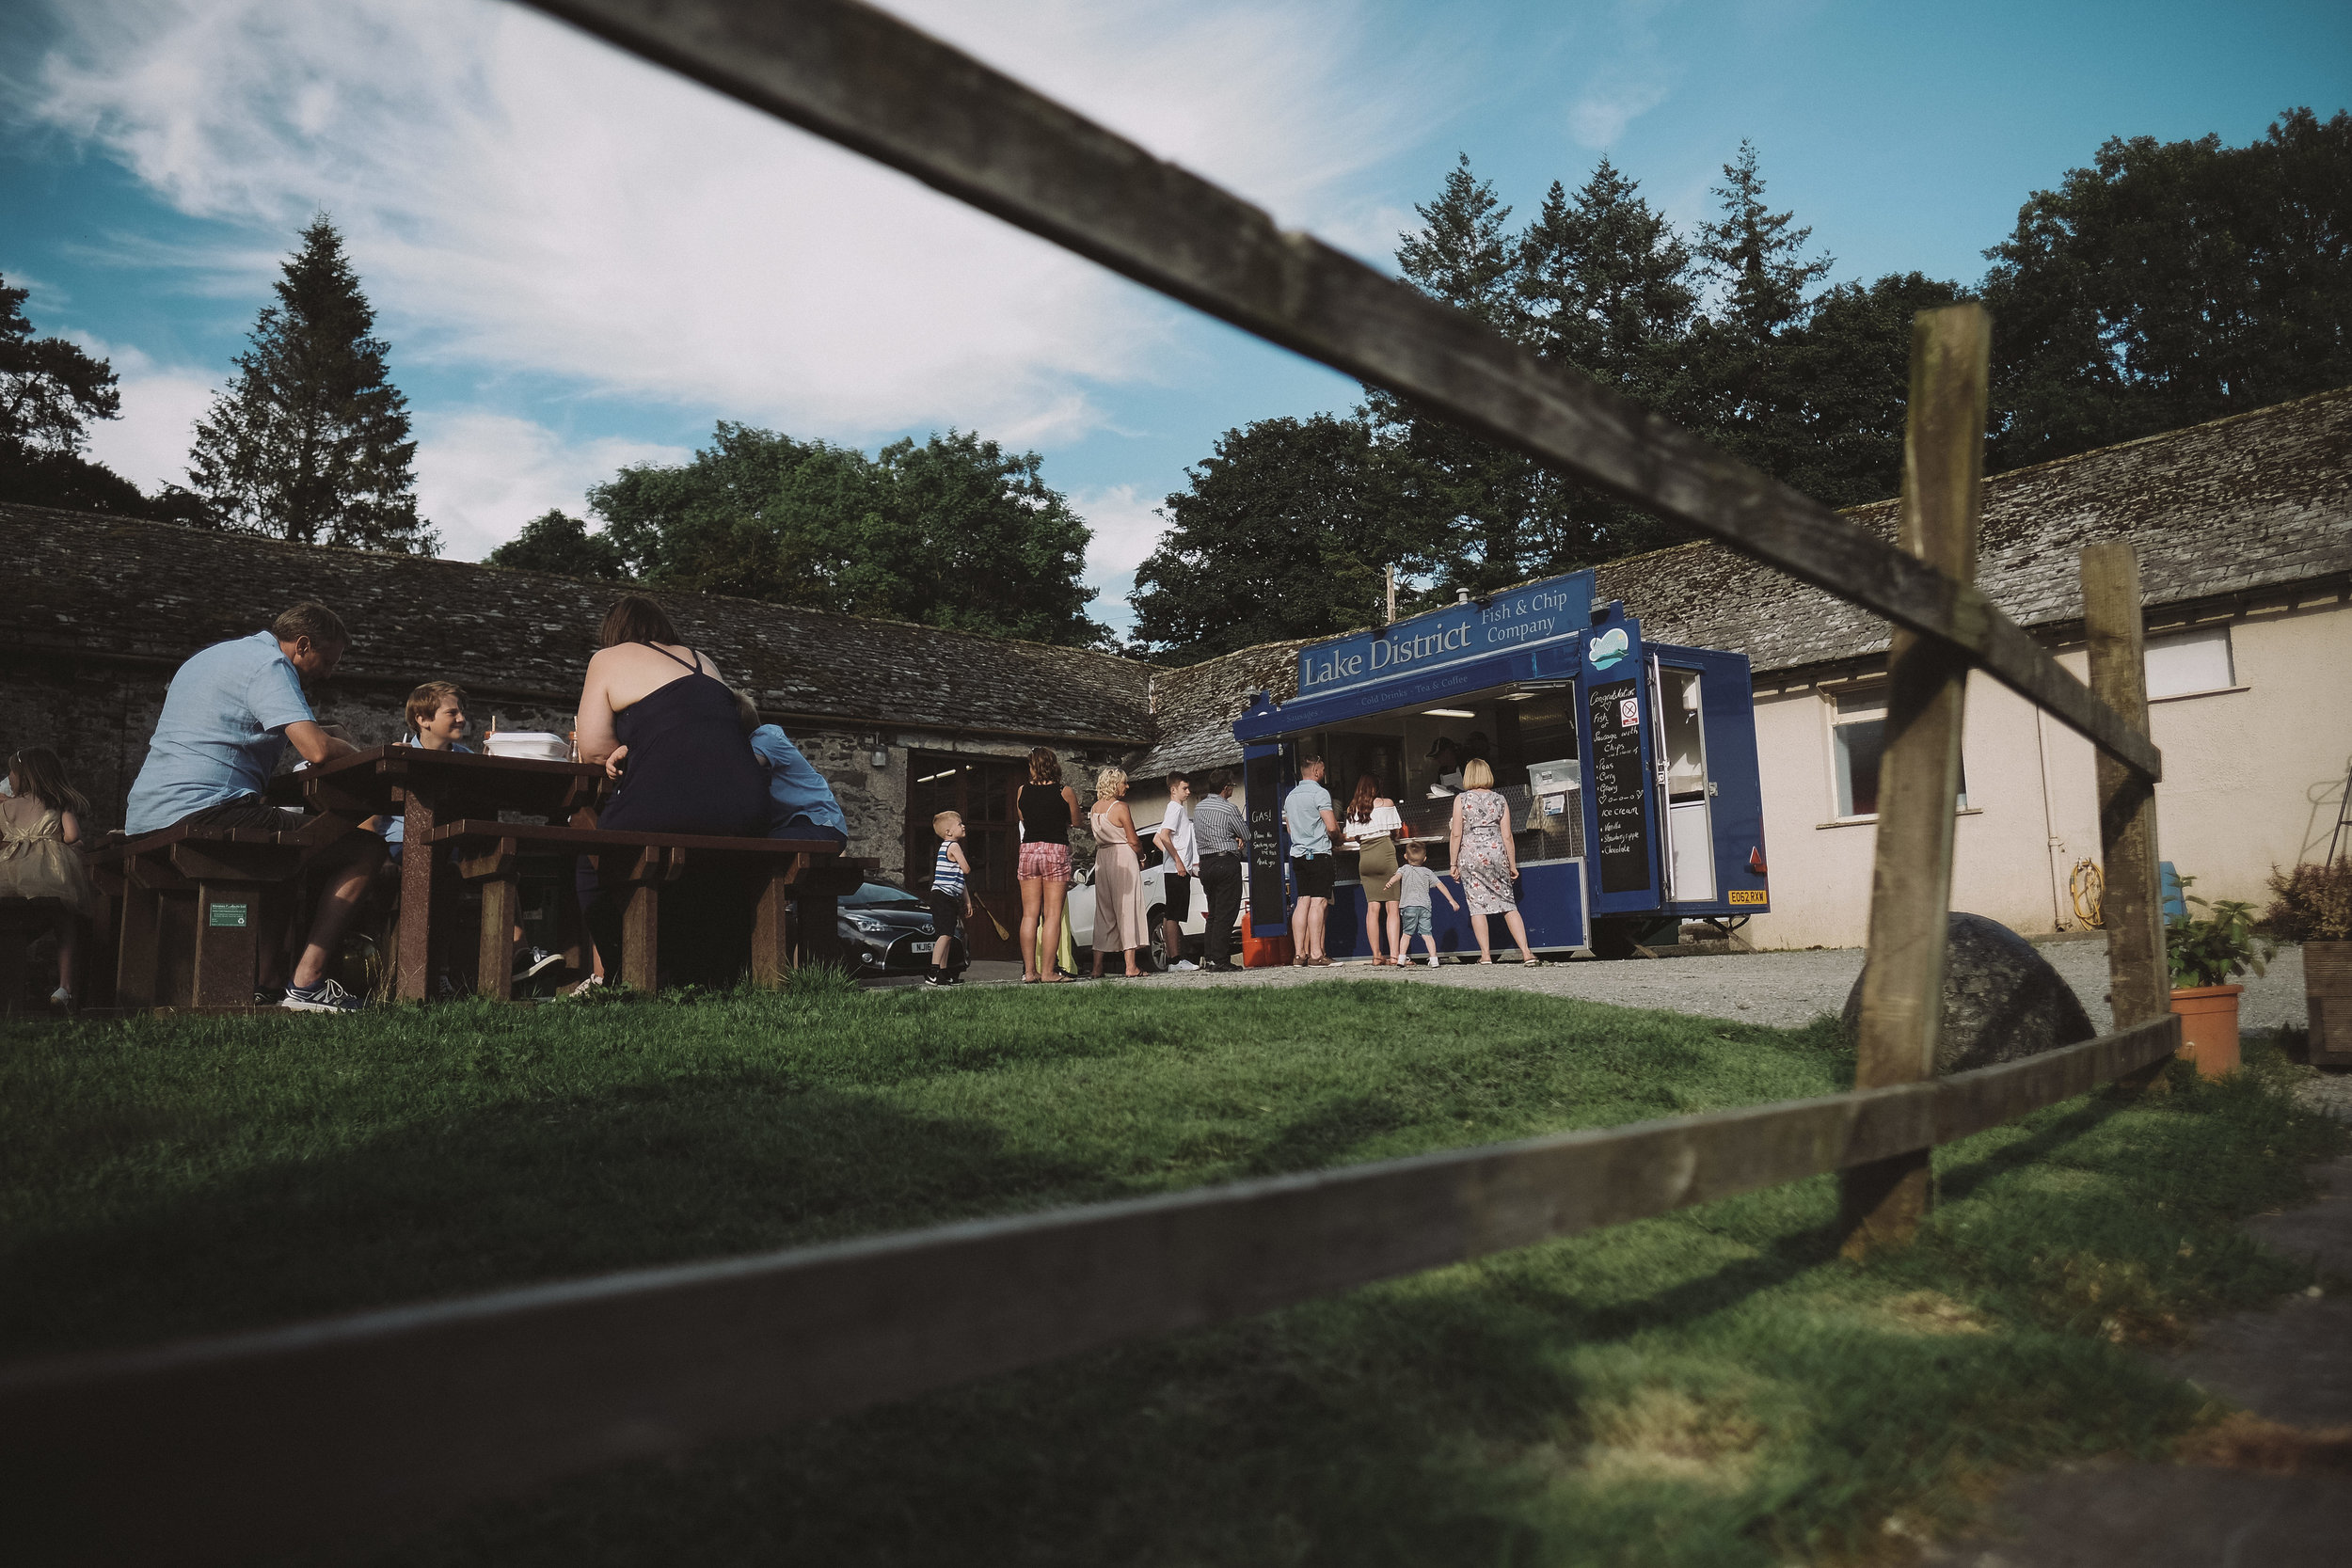 A fish and chip van at Julia and Darren's Lake District wedding by Barry Forshaw